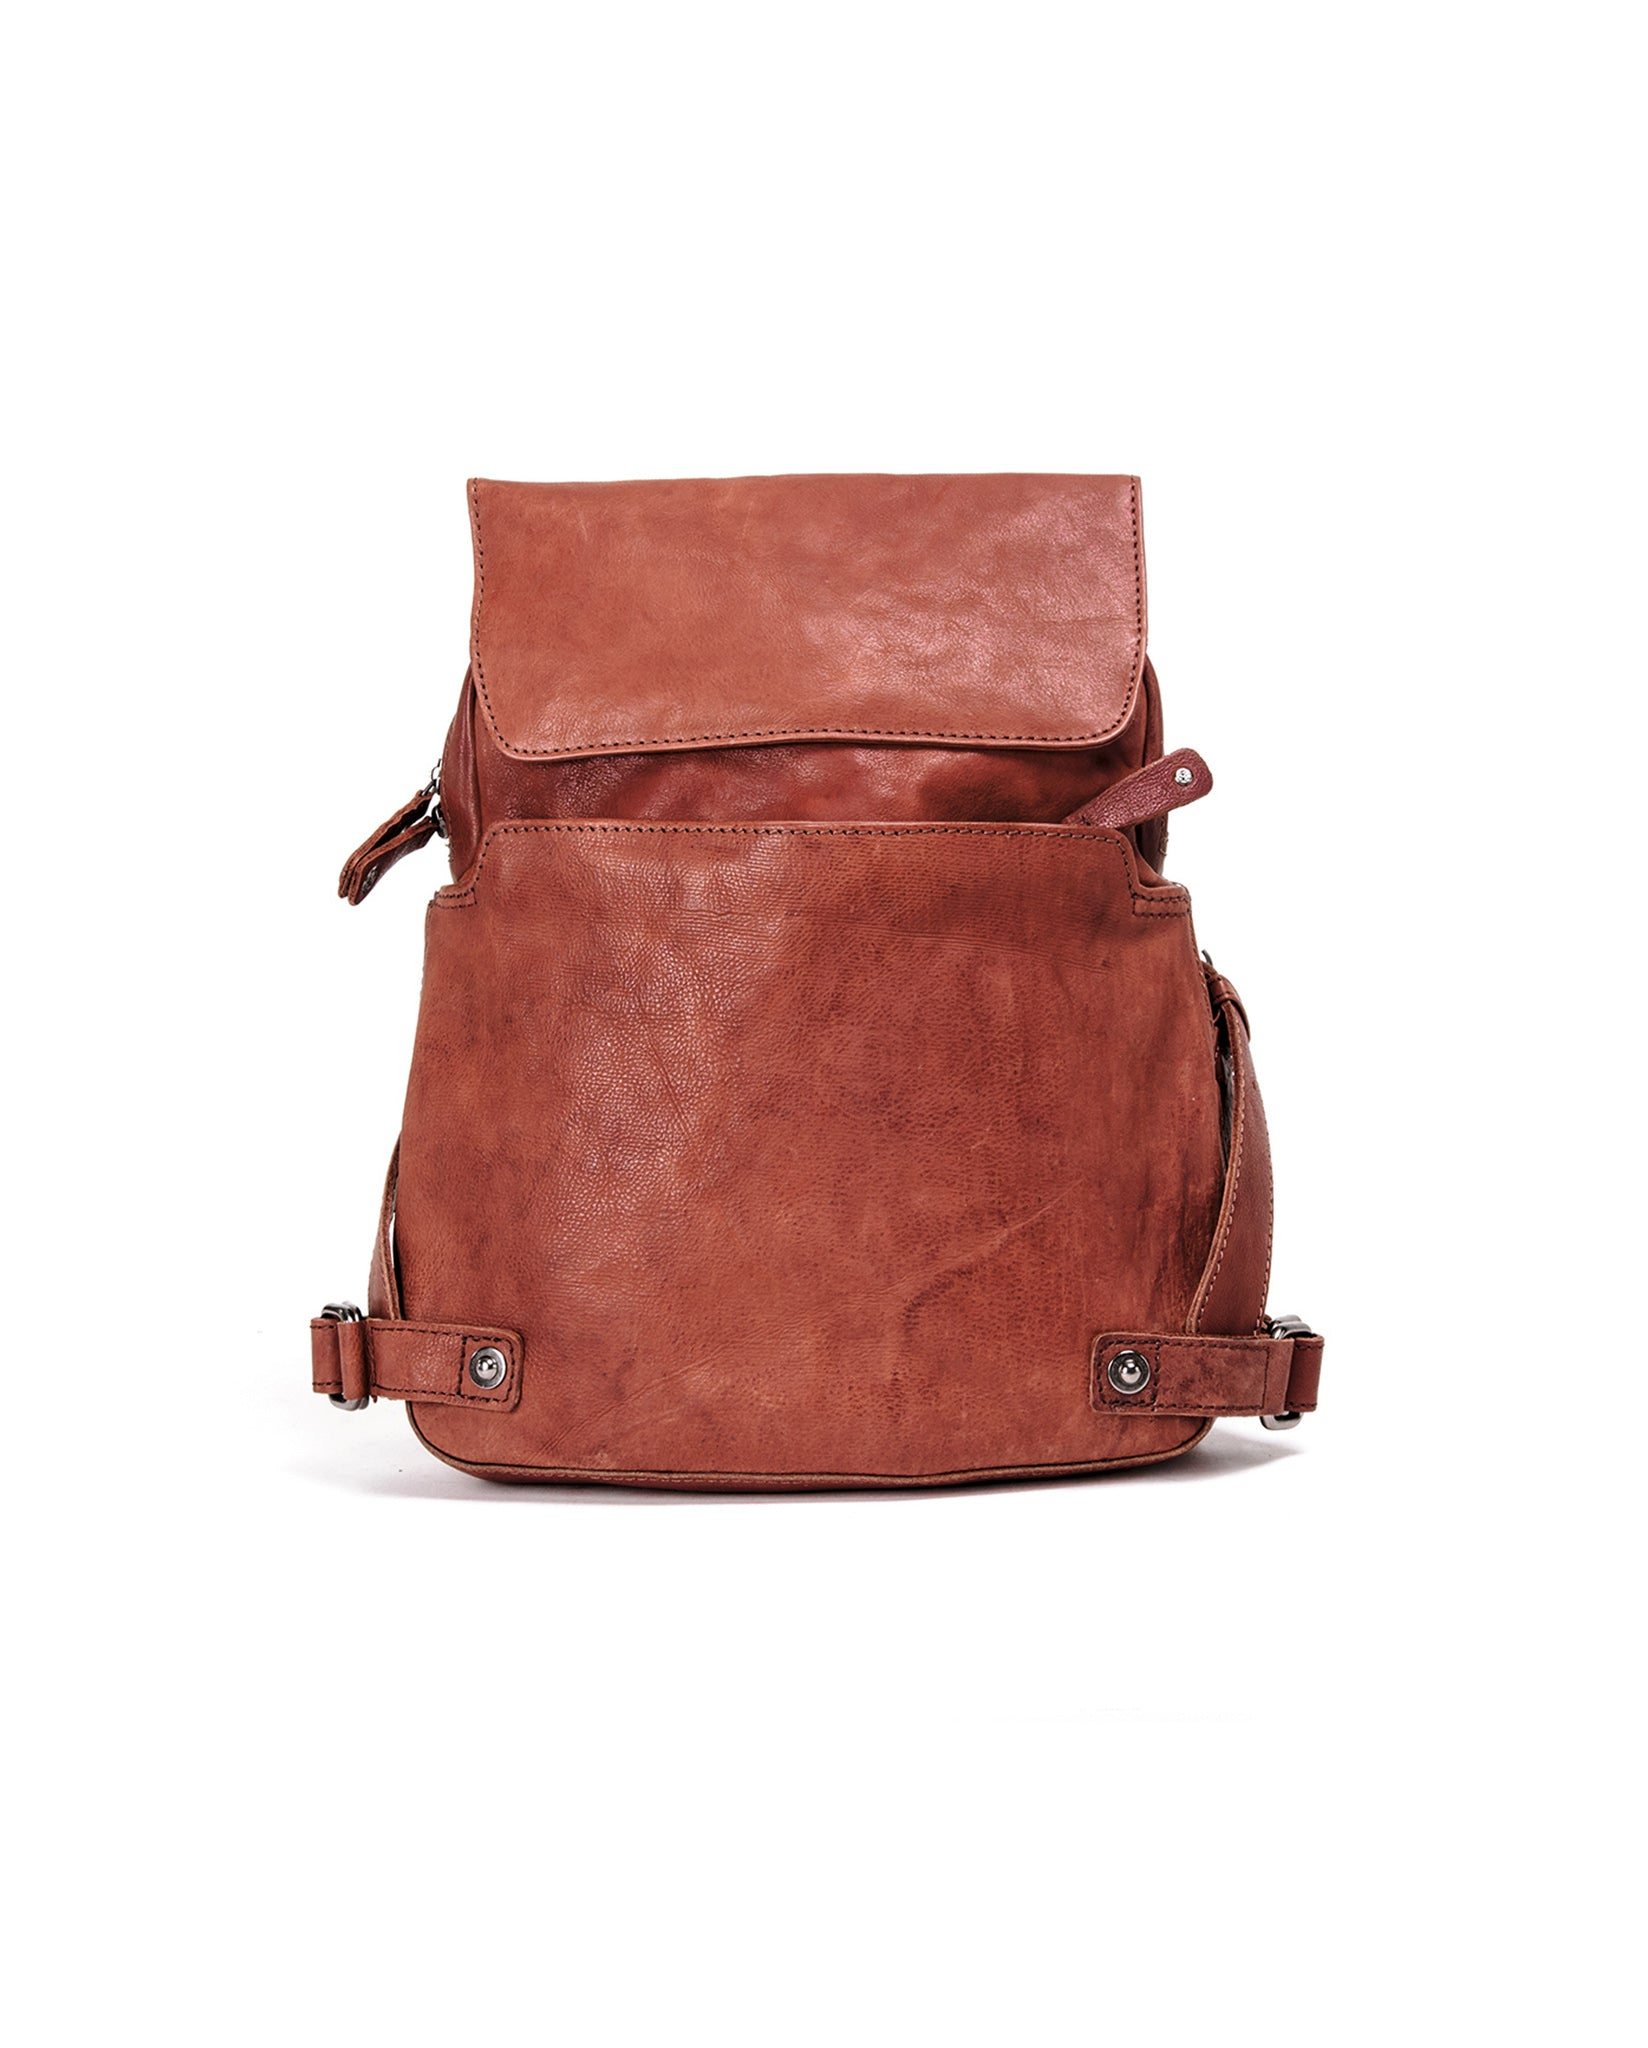 R. Johnson City-Rucksack